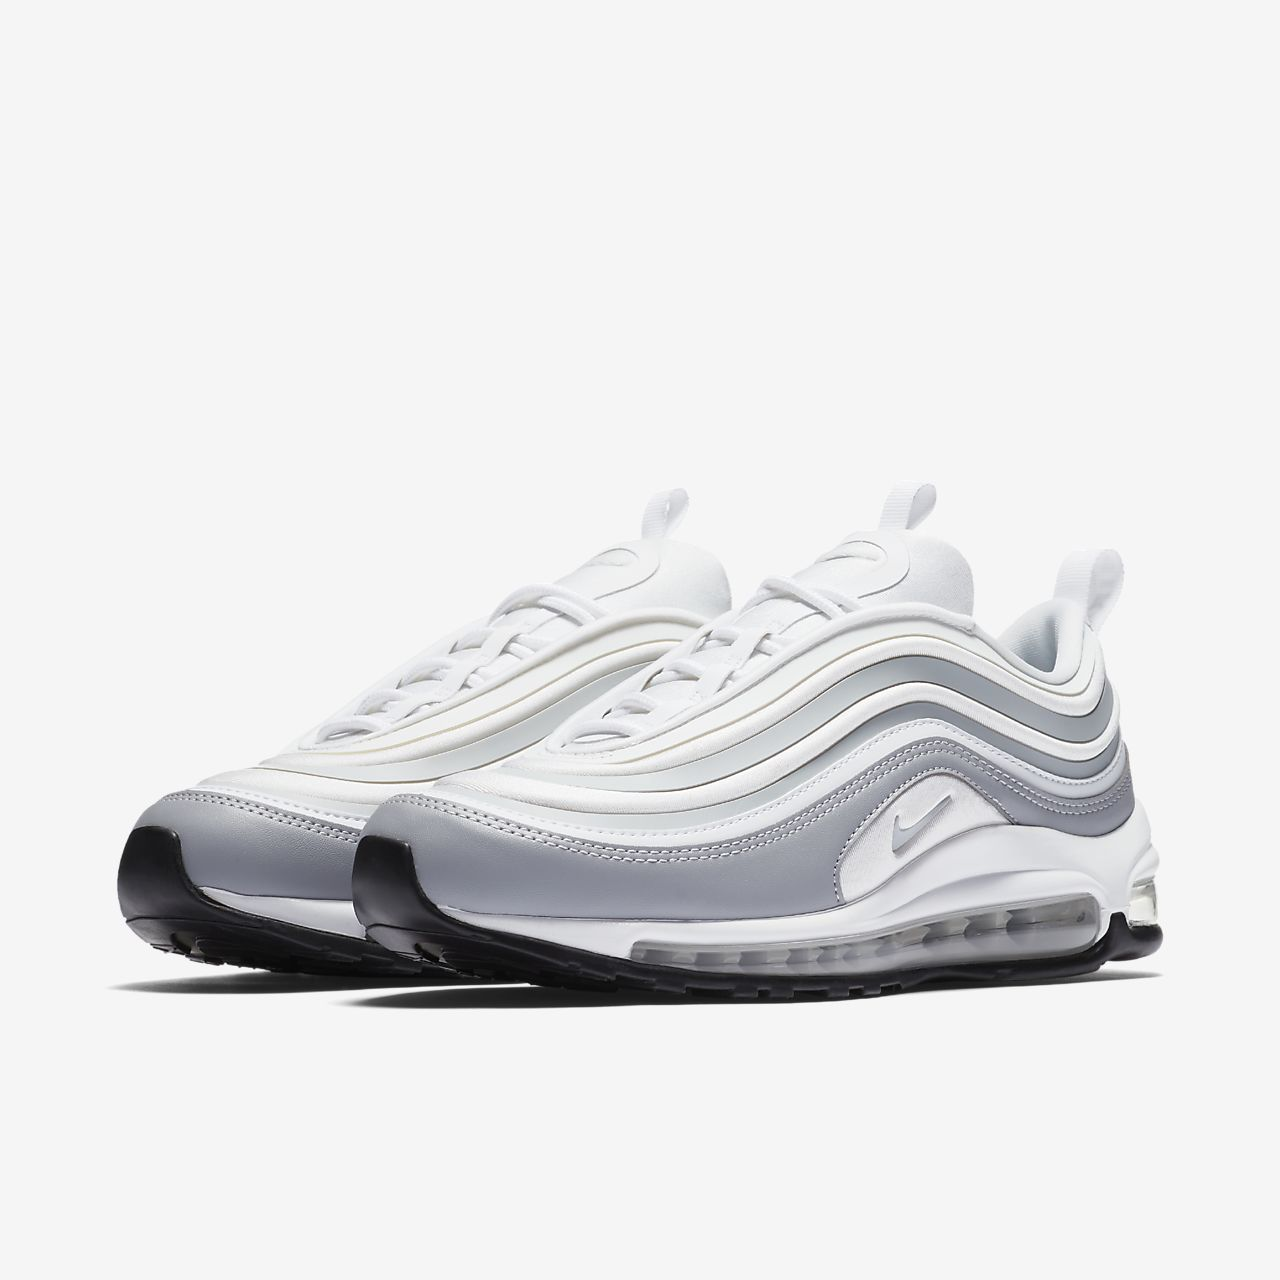 ... Nike Air Max 97 Ultra '17 Women's Shoe